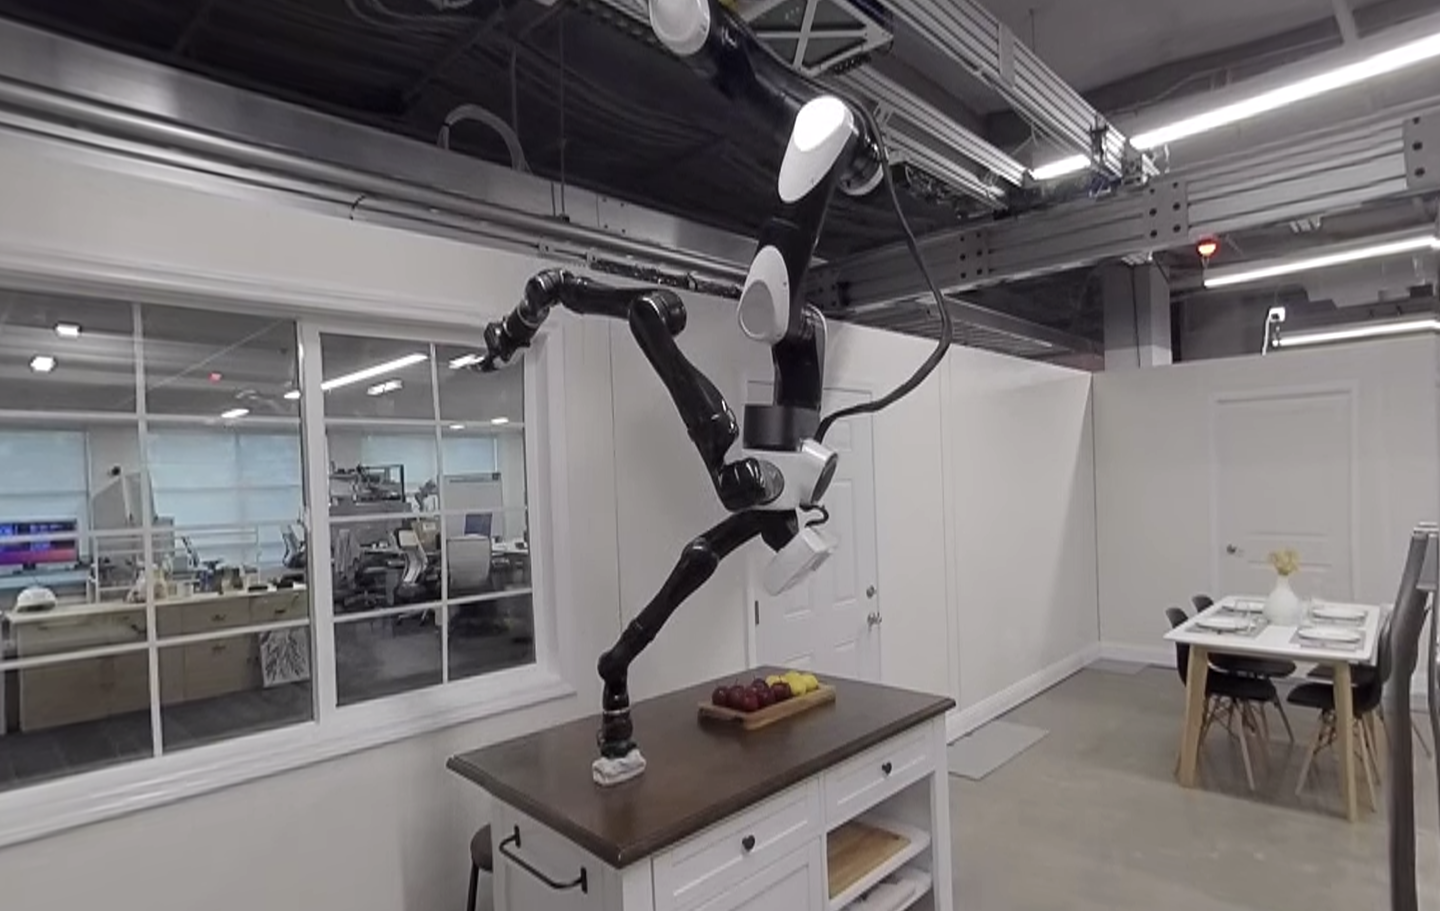 Toyota house robot ceiling